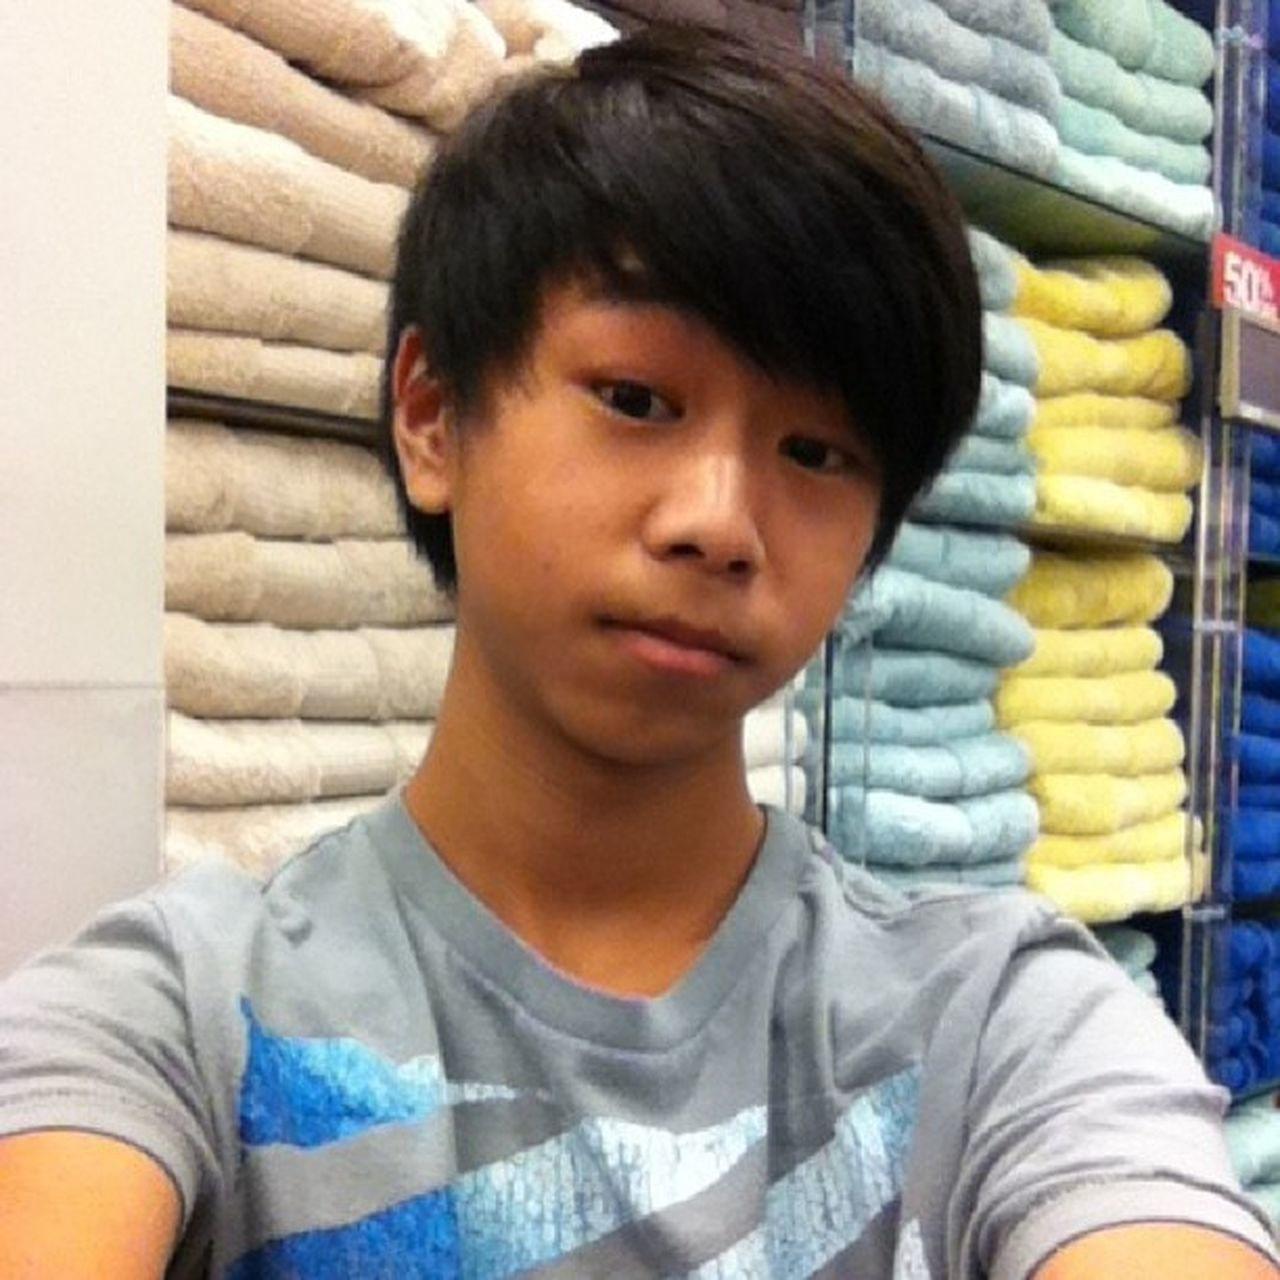 Aha they wanted towels lol so that's why we're here xD Turtle_troy Asian  Asianboy Asianguy Asianeyes Asianhair Asianlife Asianstar Asianswag Asiancutie Asianpride Asianstyle Hmong Hmoob Hmongboy Hmonglife Hmongpride Hmong_cuties Hmoobthoj Hmoobpride Cute KAWAII LOL AHA Follow umm